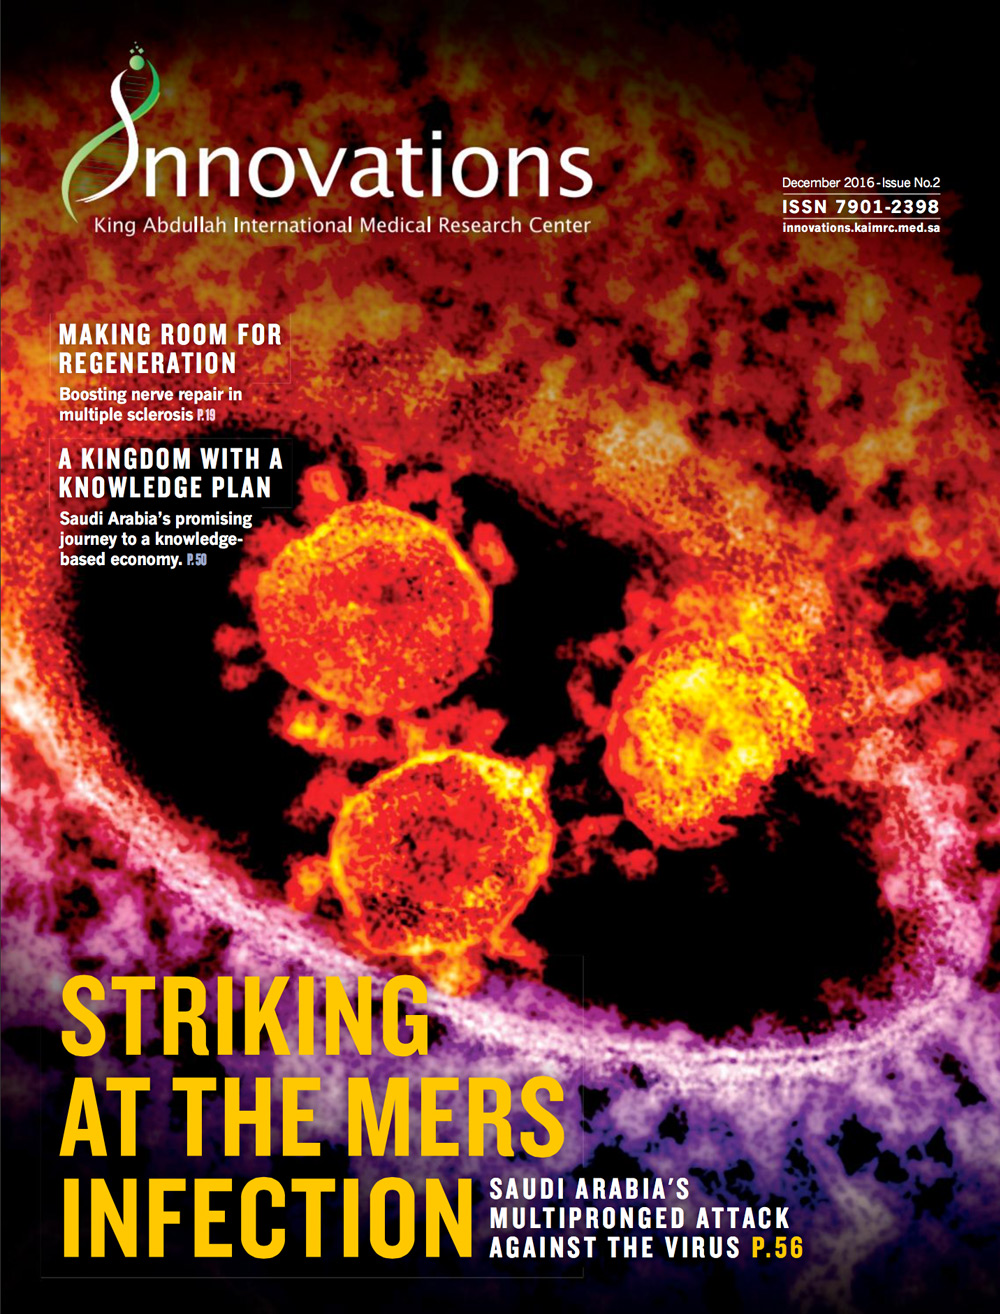 KAIMRC Innovations Issue 2